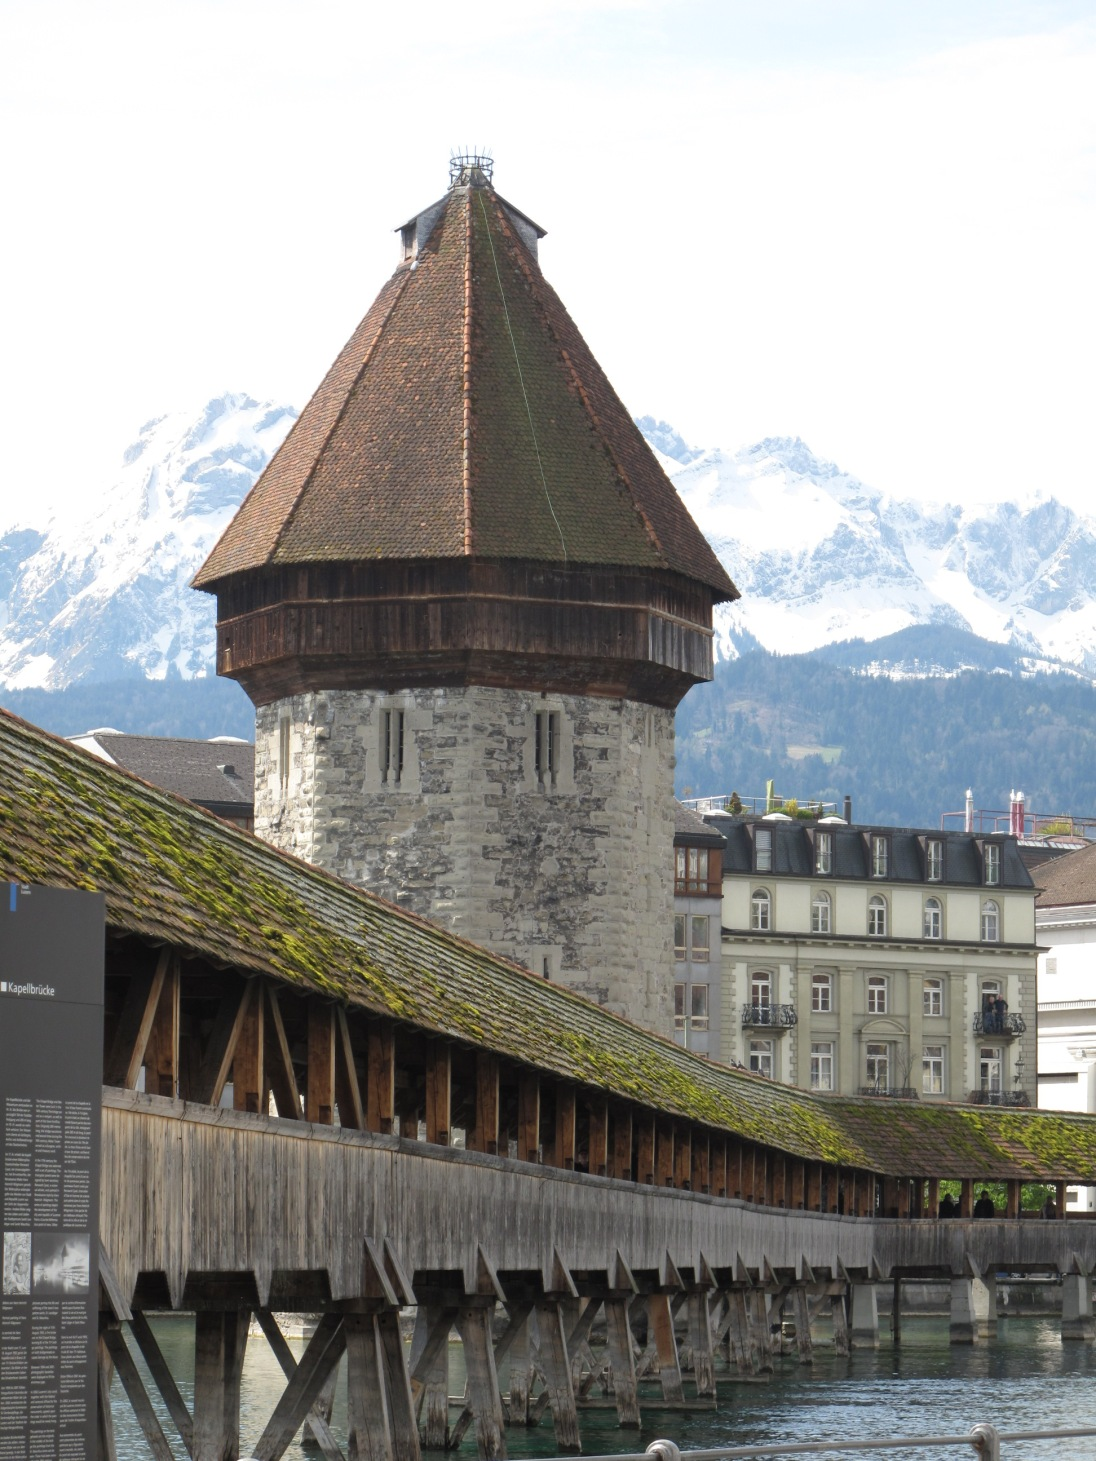 Lucerne and the medieval tower